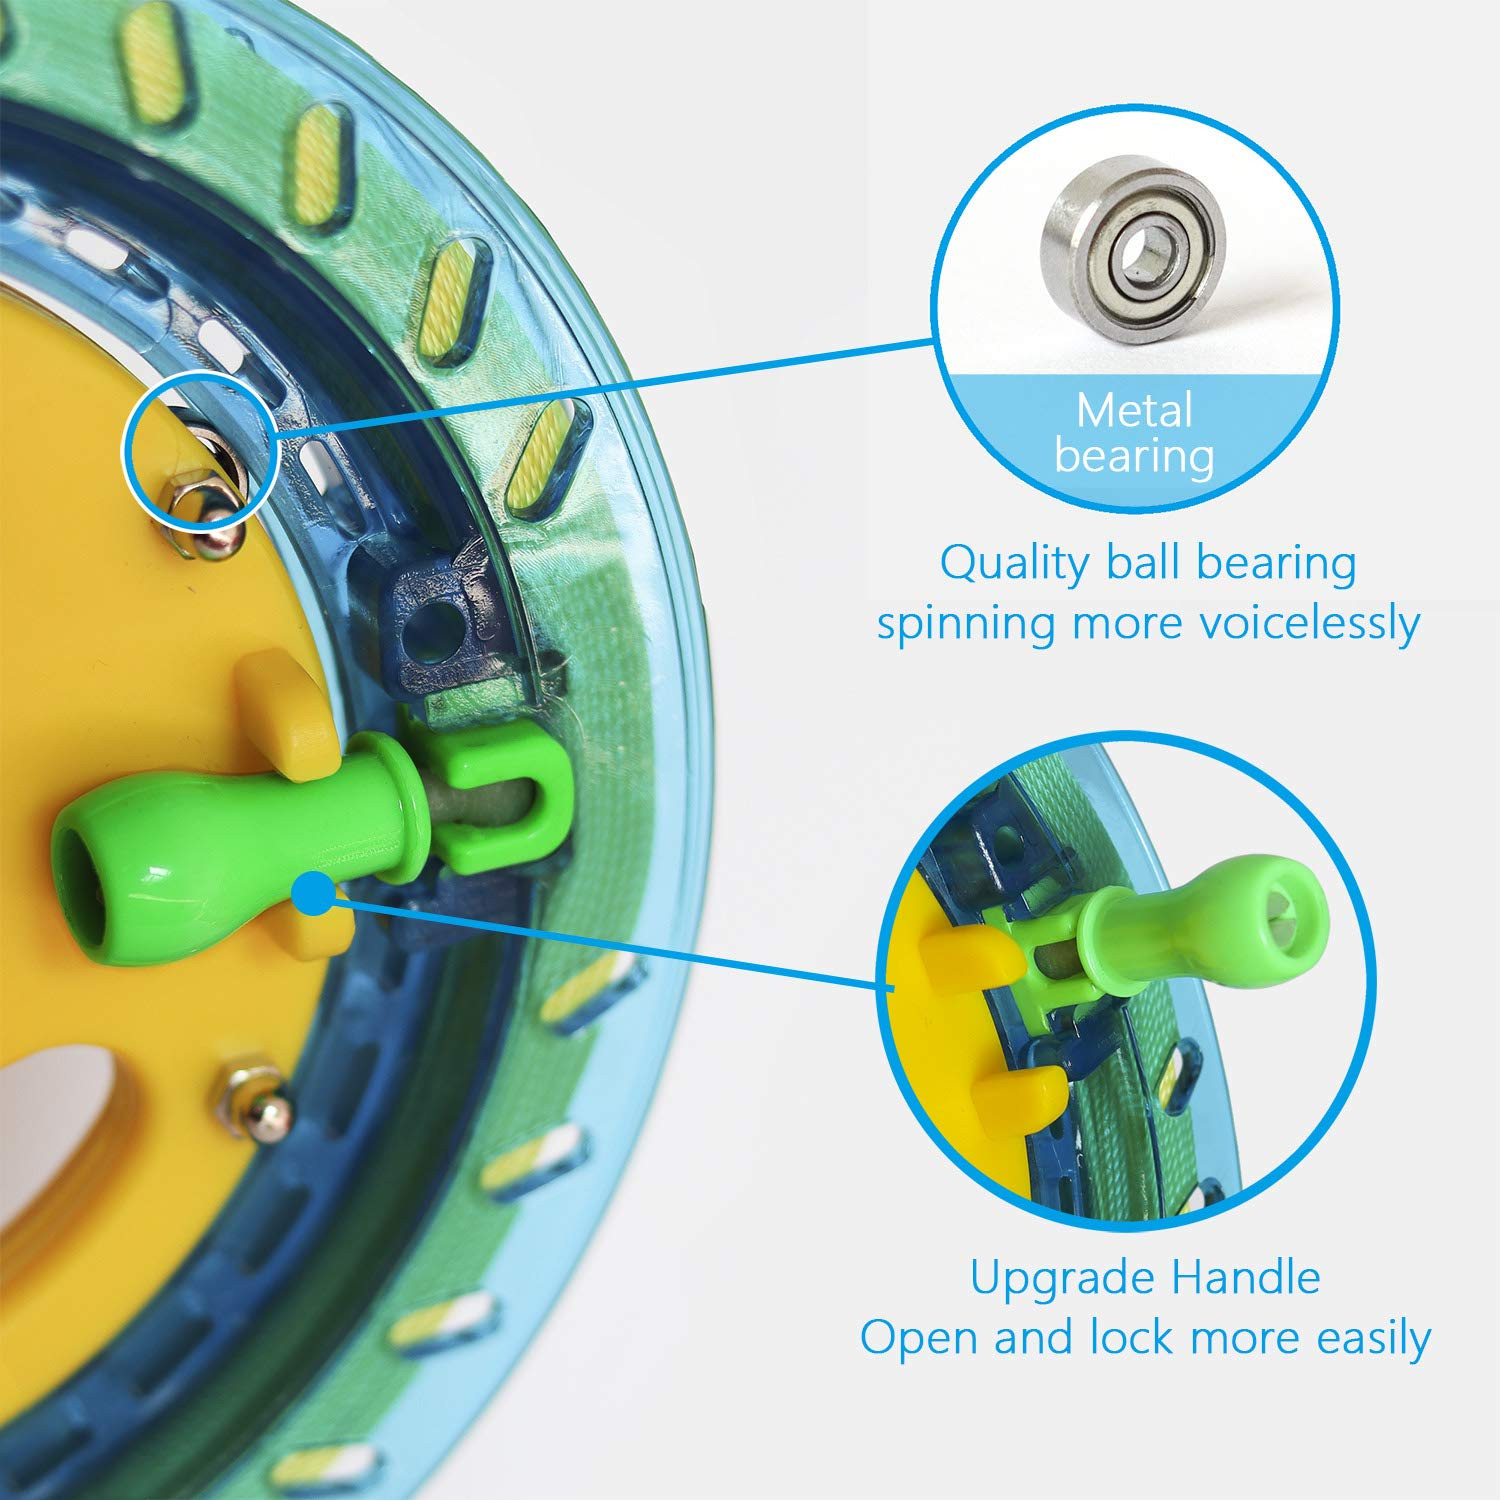 with 600ft Line Smooth Rotation Ball Bearing Tool for Single Line Kite Flying for Kids//Teens Red Dia Kite String Flight Tool Reel Winder Handle Lockable Kite 7inches